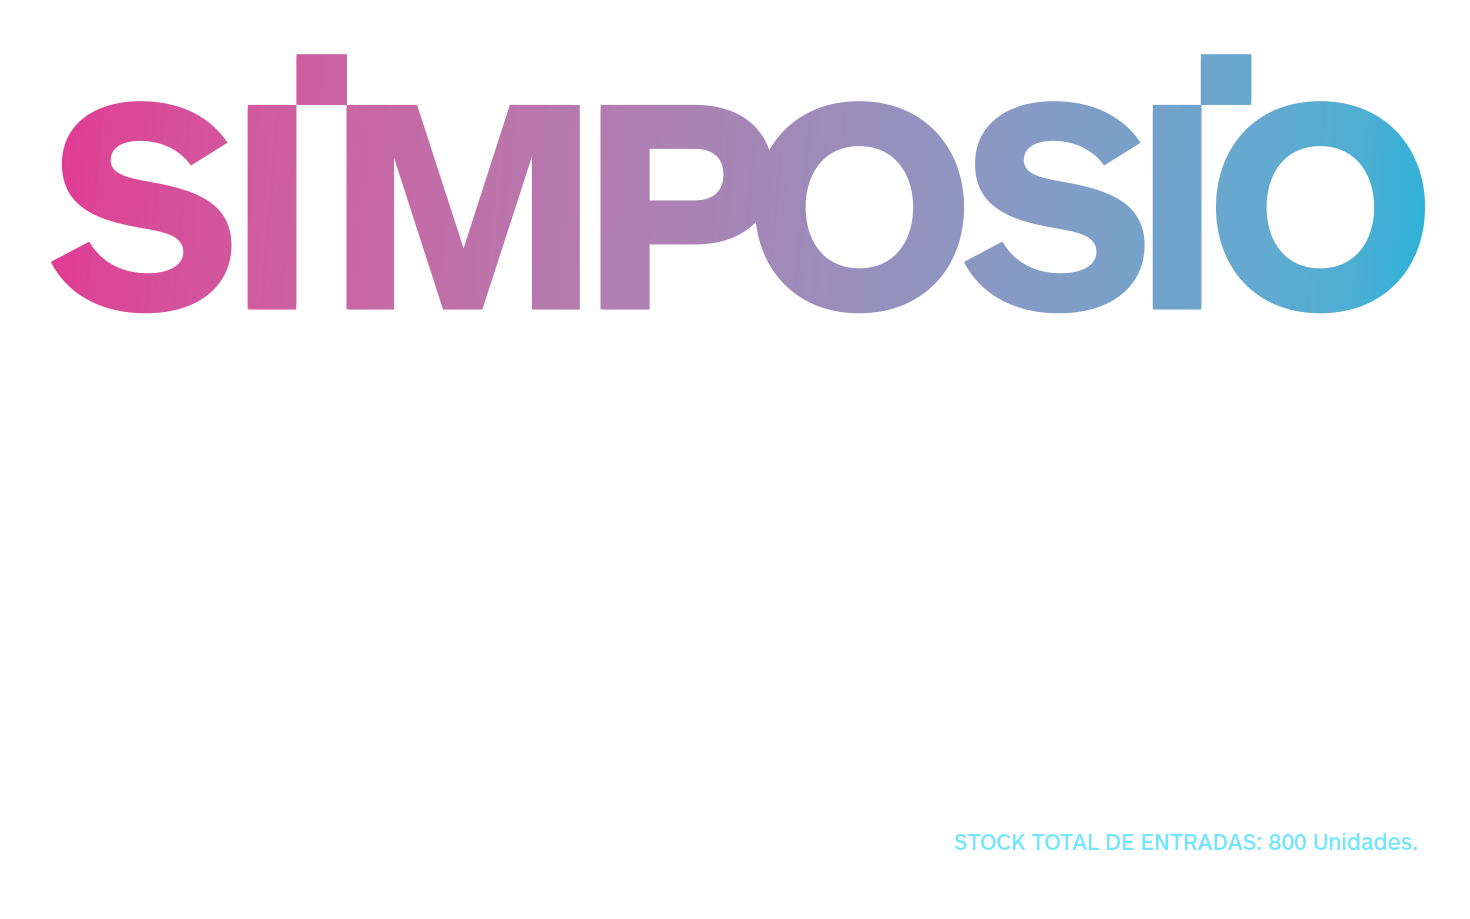 http://simposiopyme.paisdigital.org/wp-content/uploads/2019/09/logo-simposio2-5.png